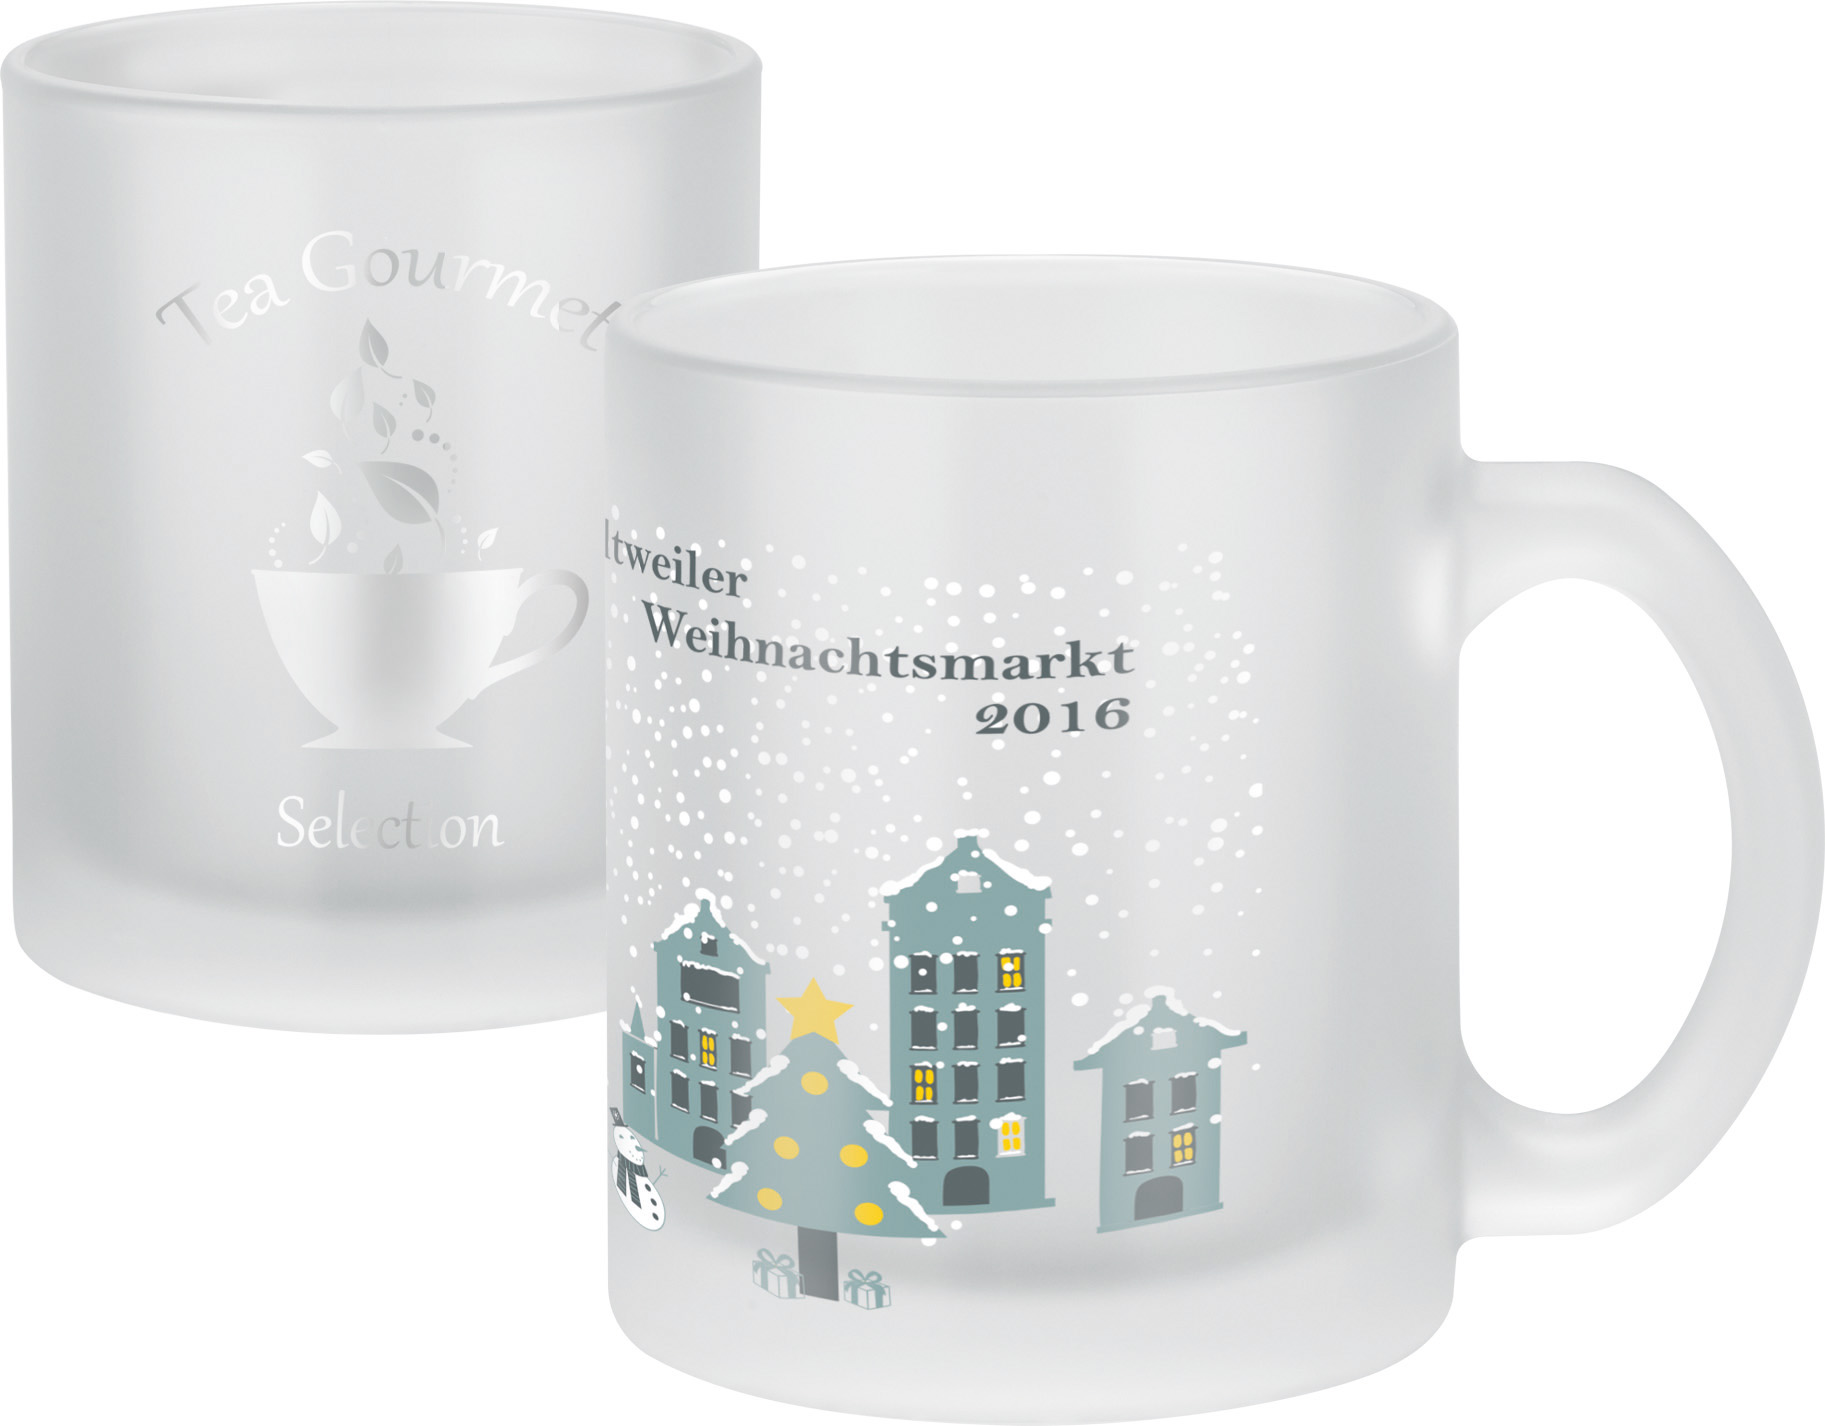 mug frozen blanc des 108 ex objets publicitaires personnalis s mug et tasse personnalis s. Black Bedroom Furniture Sets. Home Design Ideas